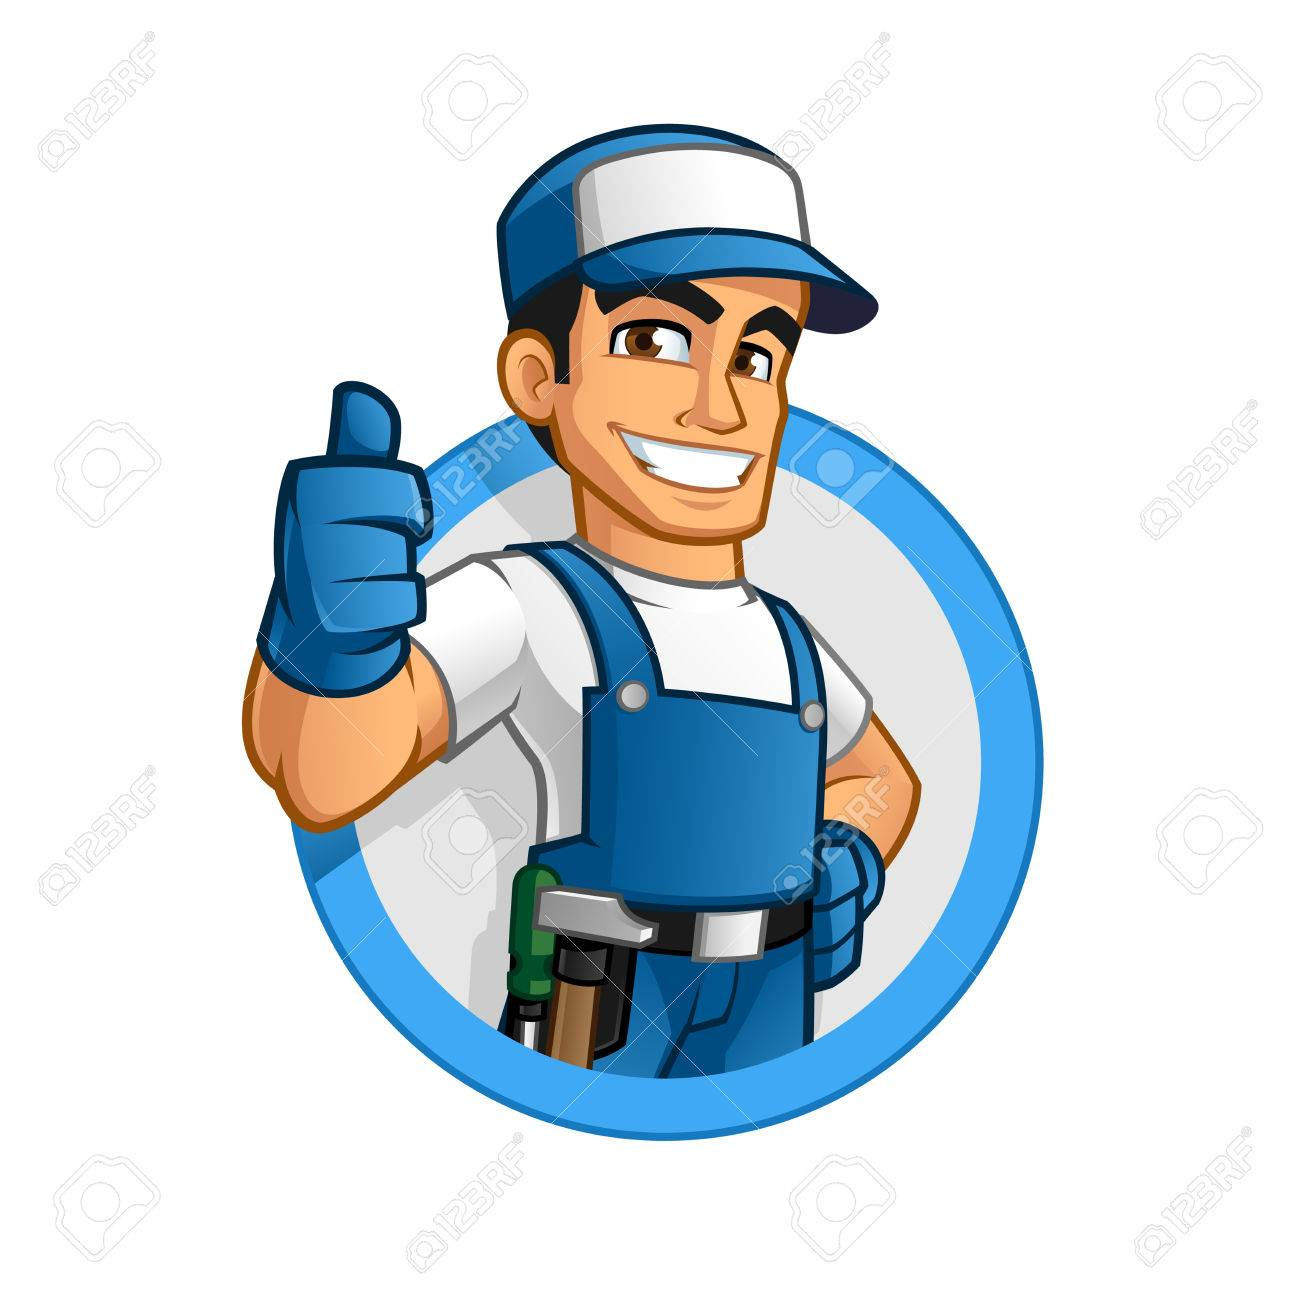 Handyman wearing work clothes and a belt, with tool - 63151180